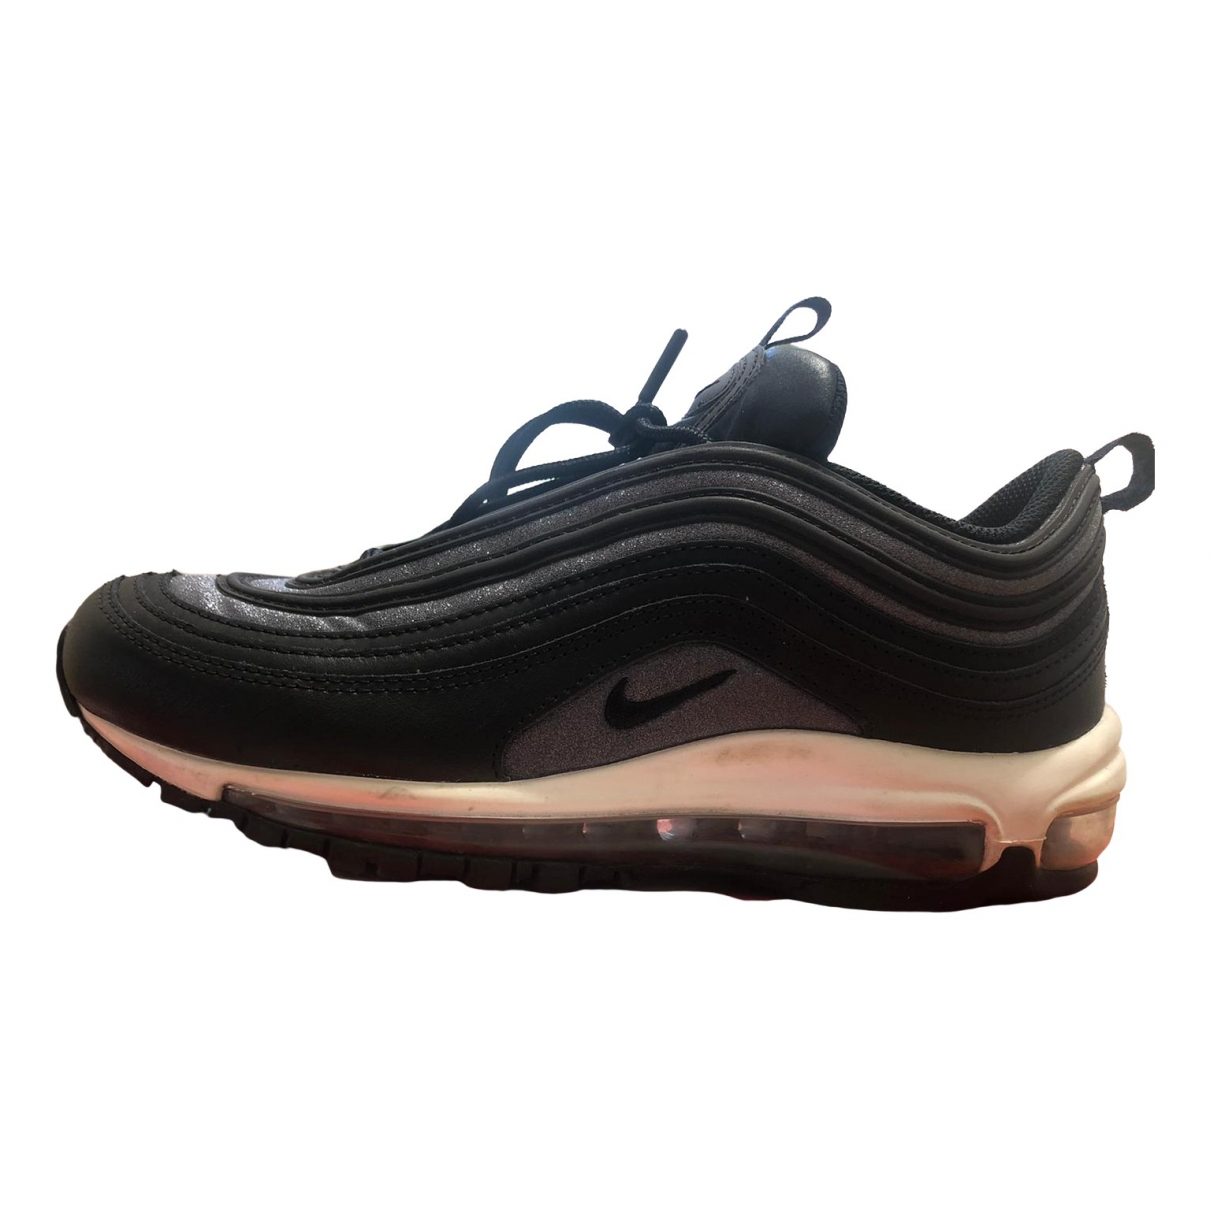 Nike Air Max 97 Black Leather Trainers for Women 8.5 US